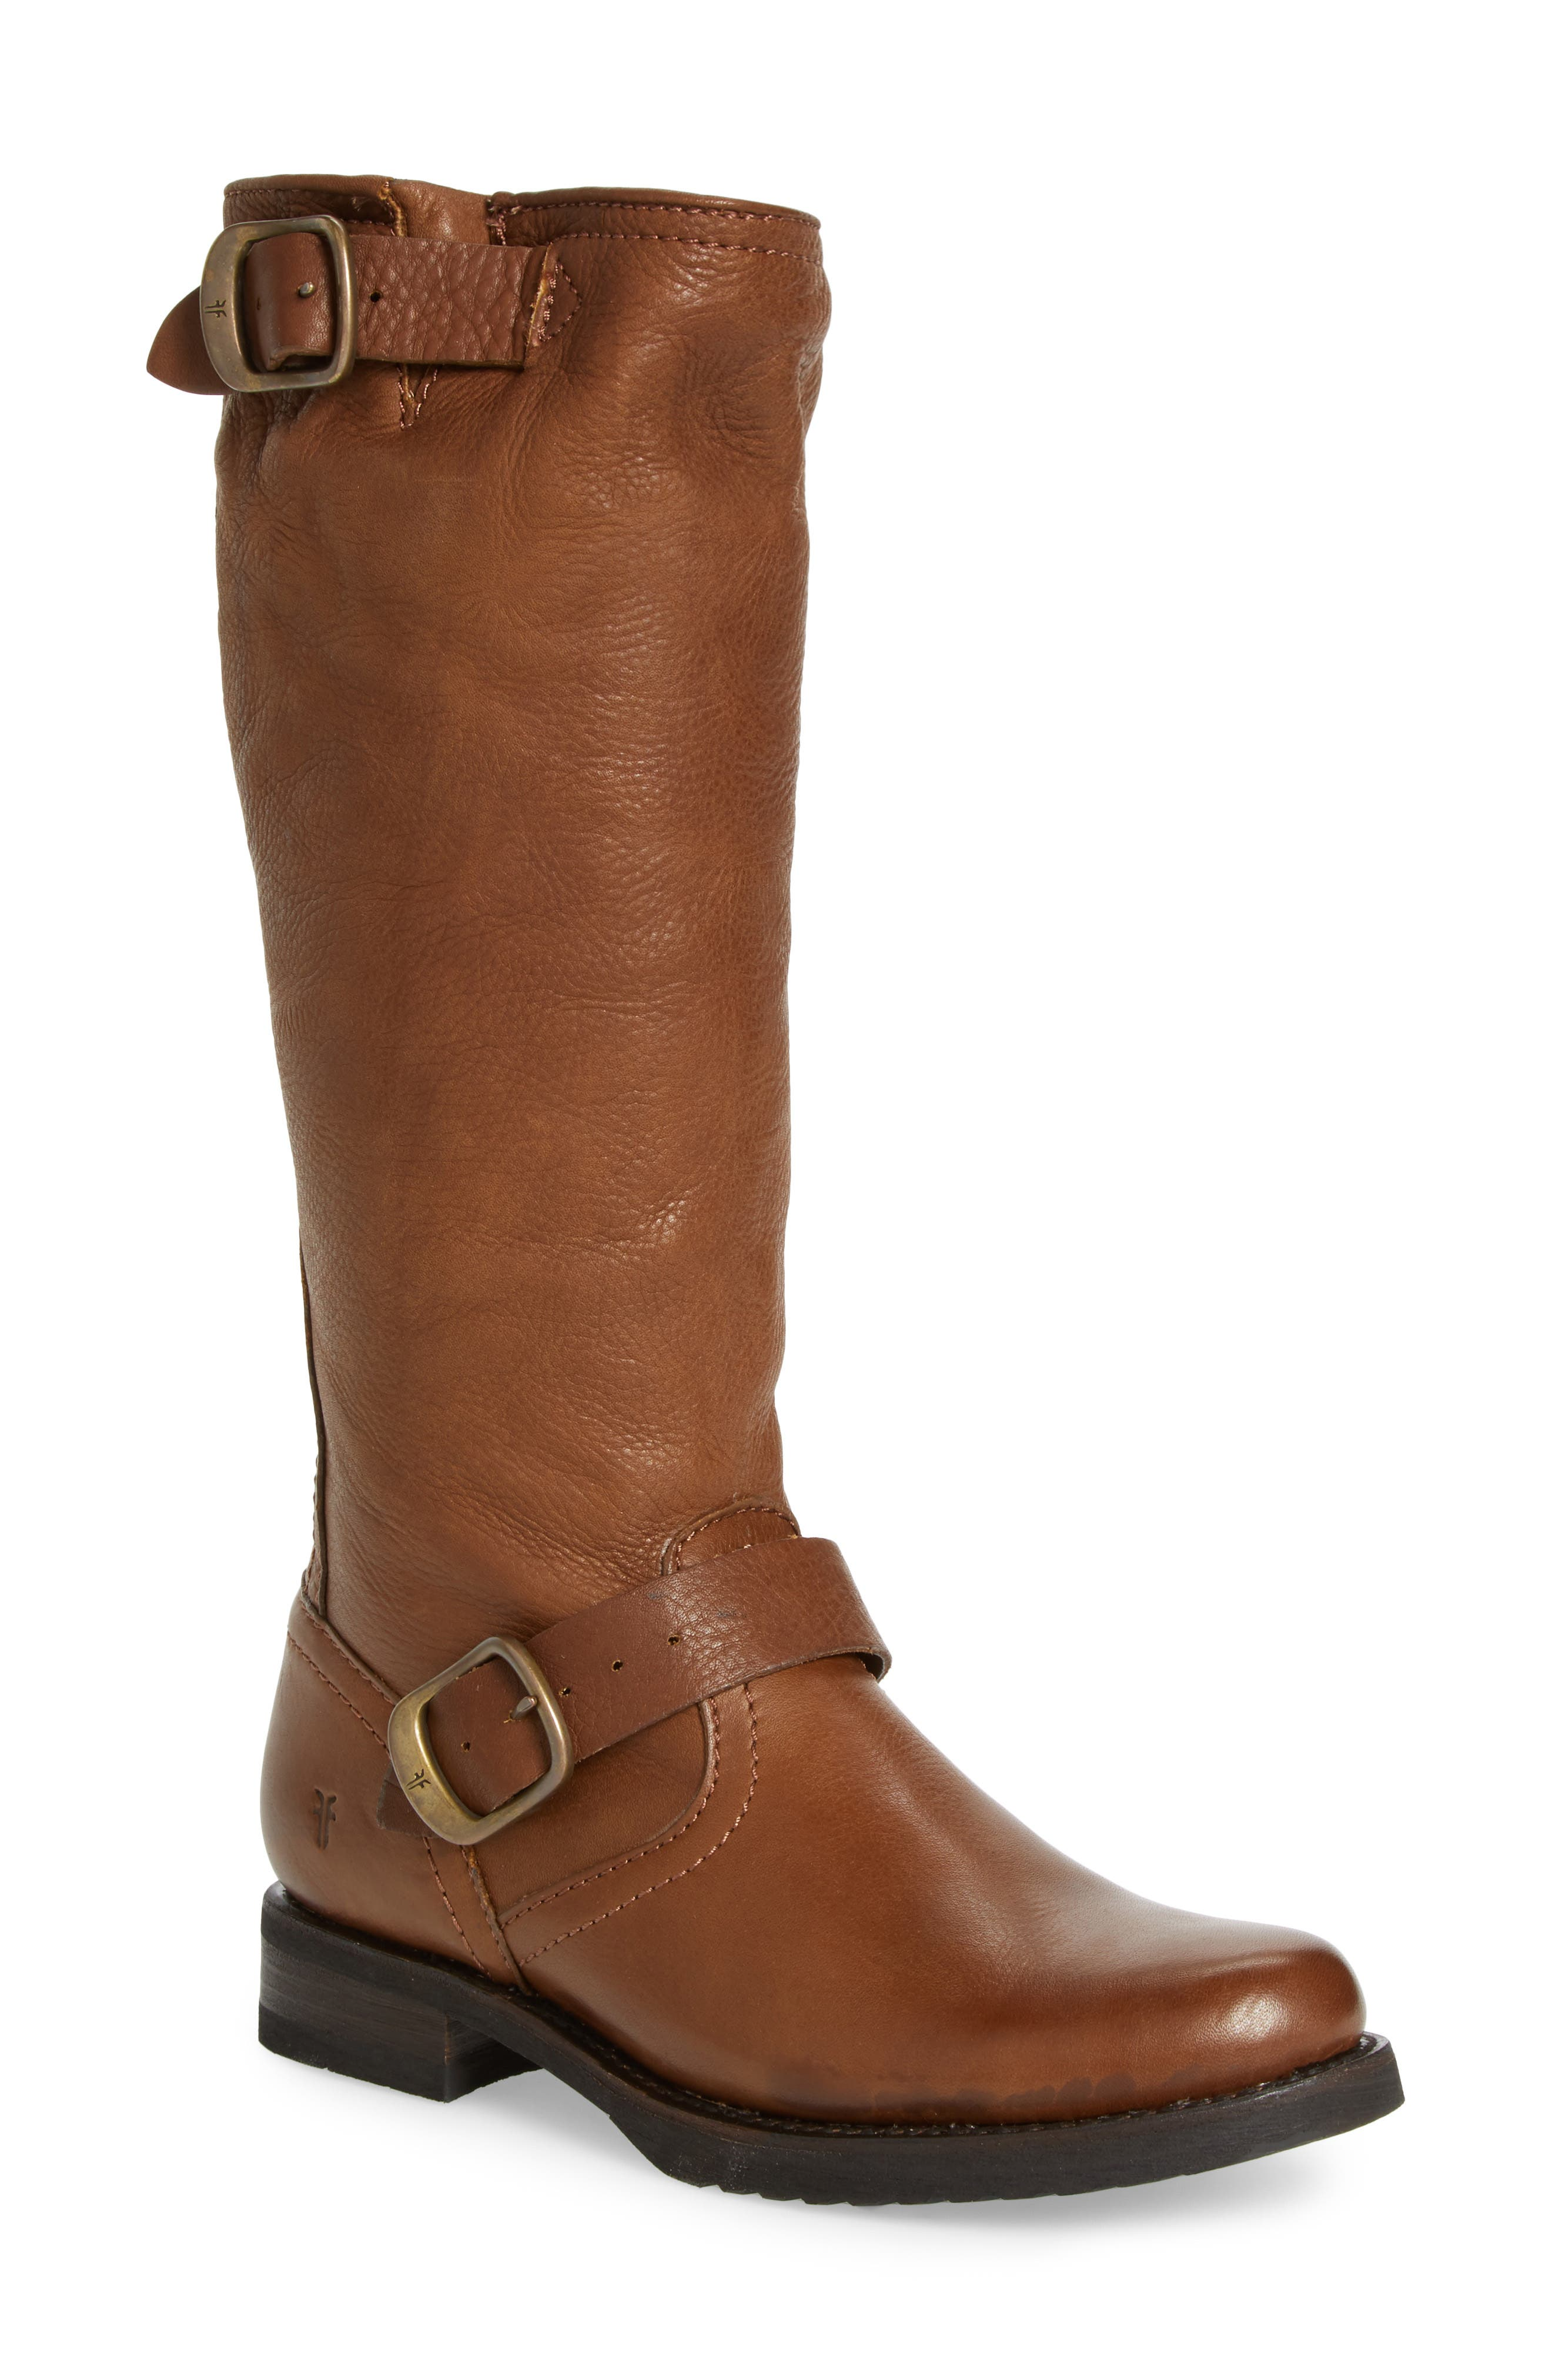 Main Image - Frye 'Veronica Slouch' Boot (Regular & Wide Calf) (